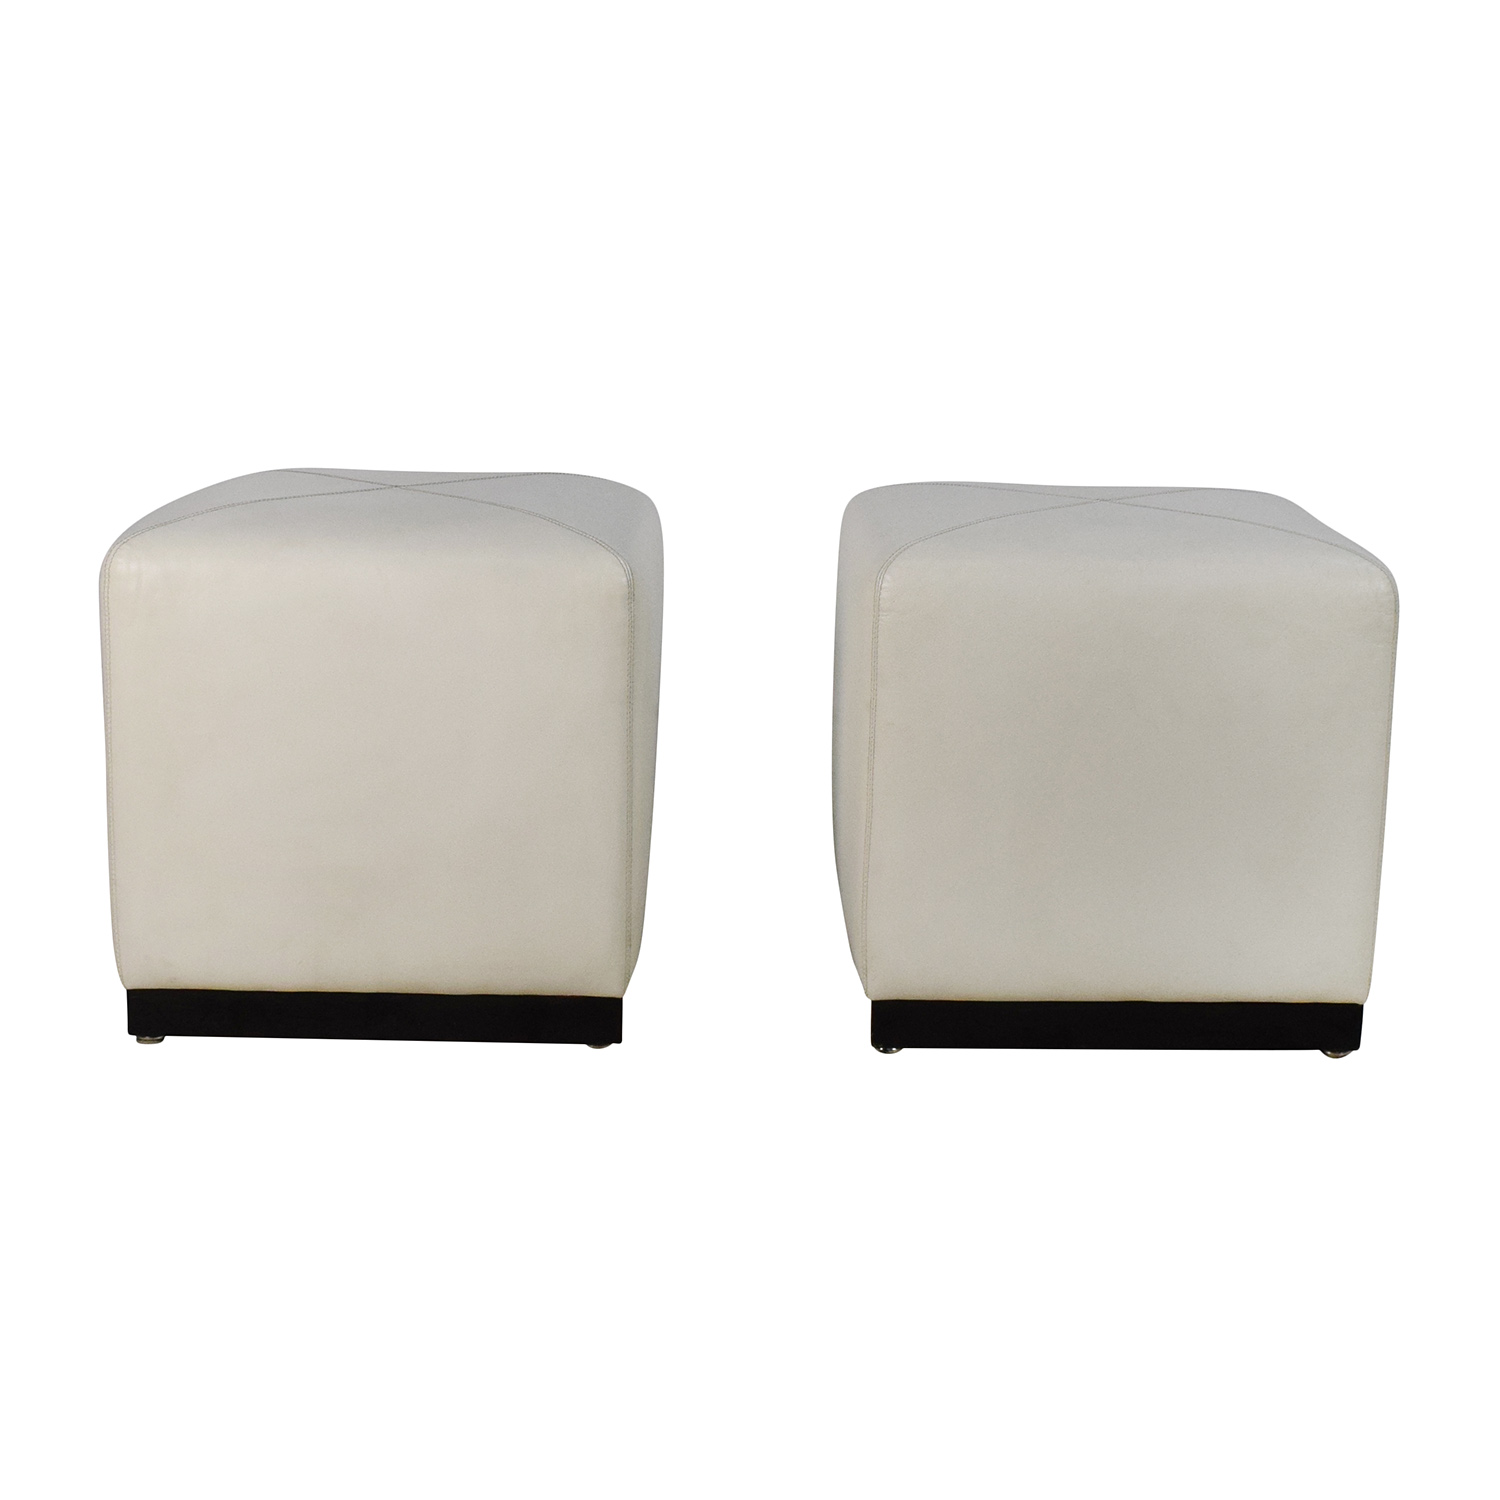 pair of white leather ottoman cubes ottomans - Storage Ottoman Cube